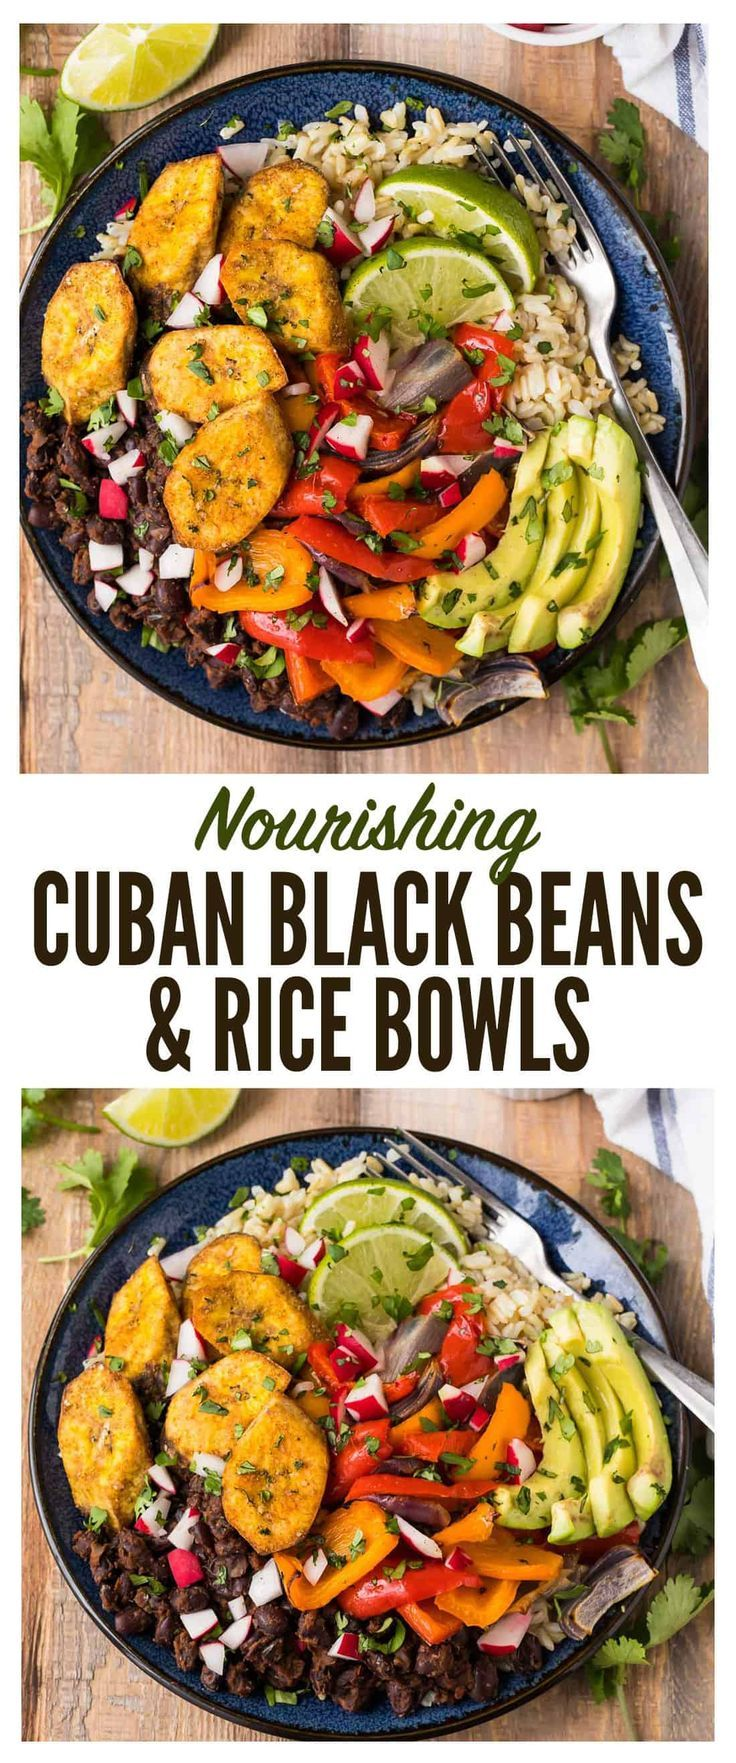 Cuban Black Beans And Rice Bowl Vegan Vegetarian